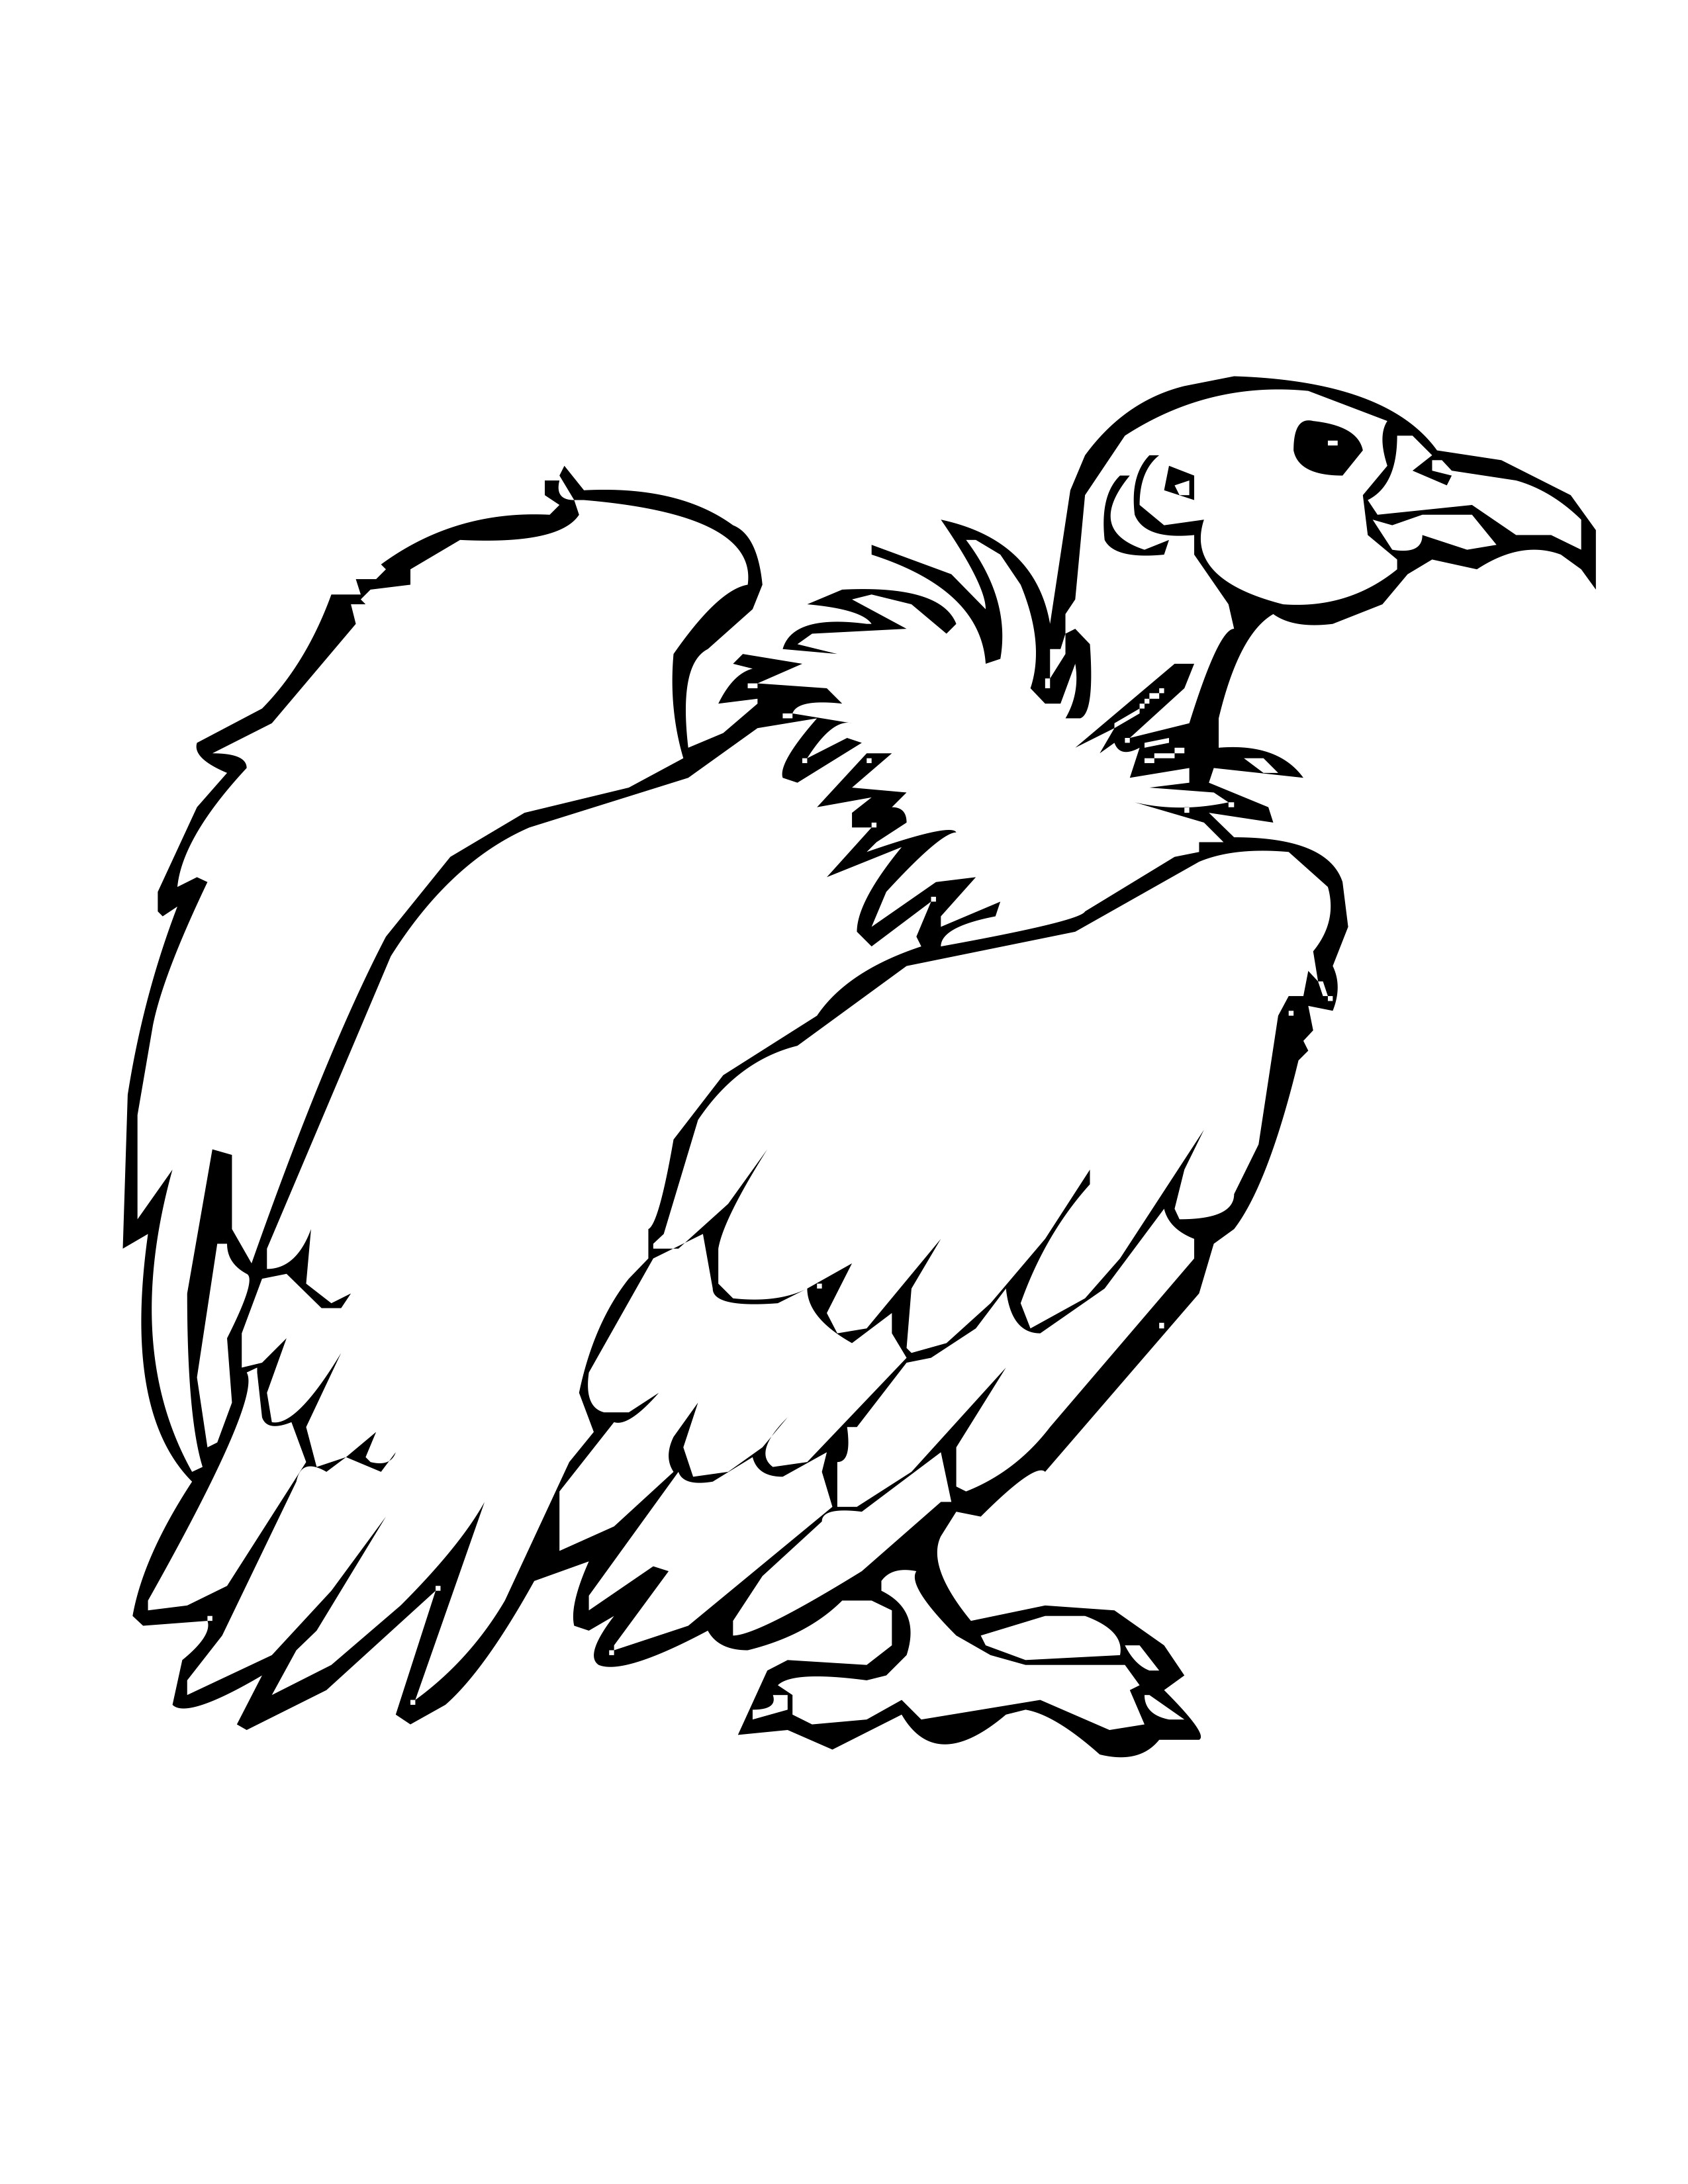 2550x3300 Turkey Vulture Coloring Page, Bird Coloring Pages